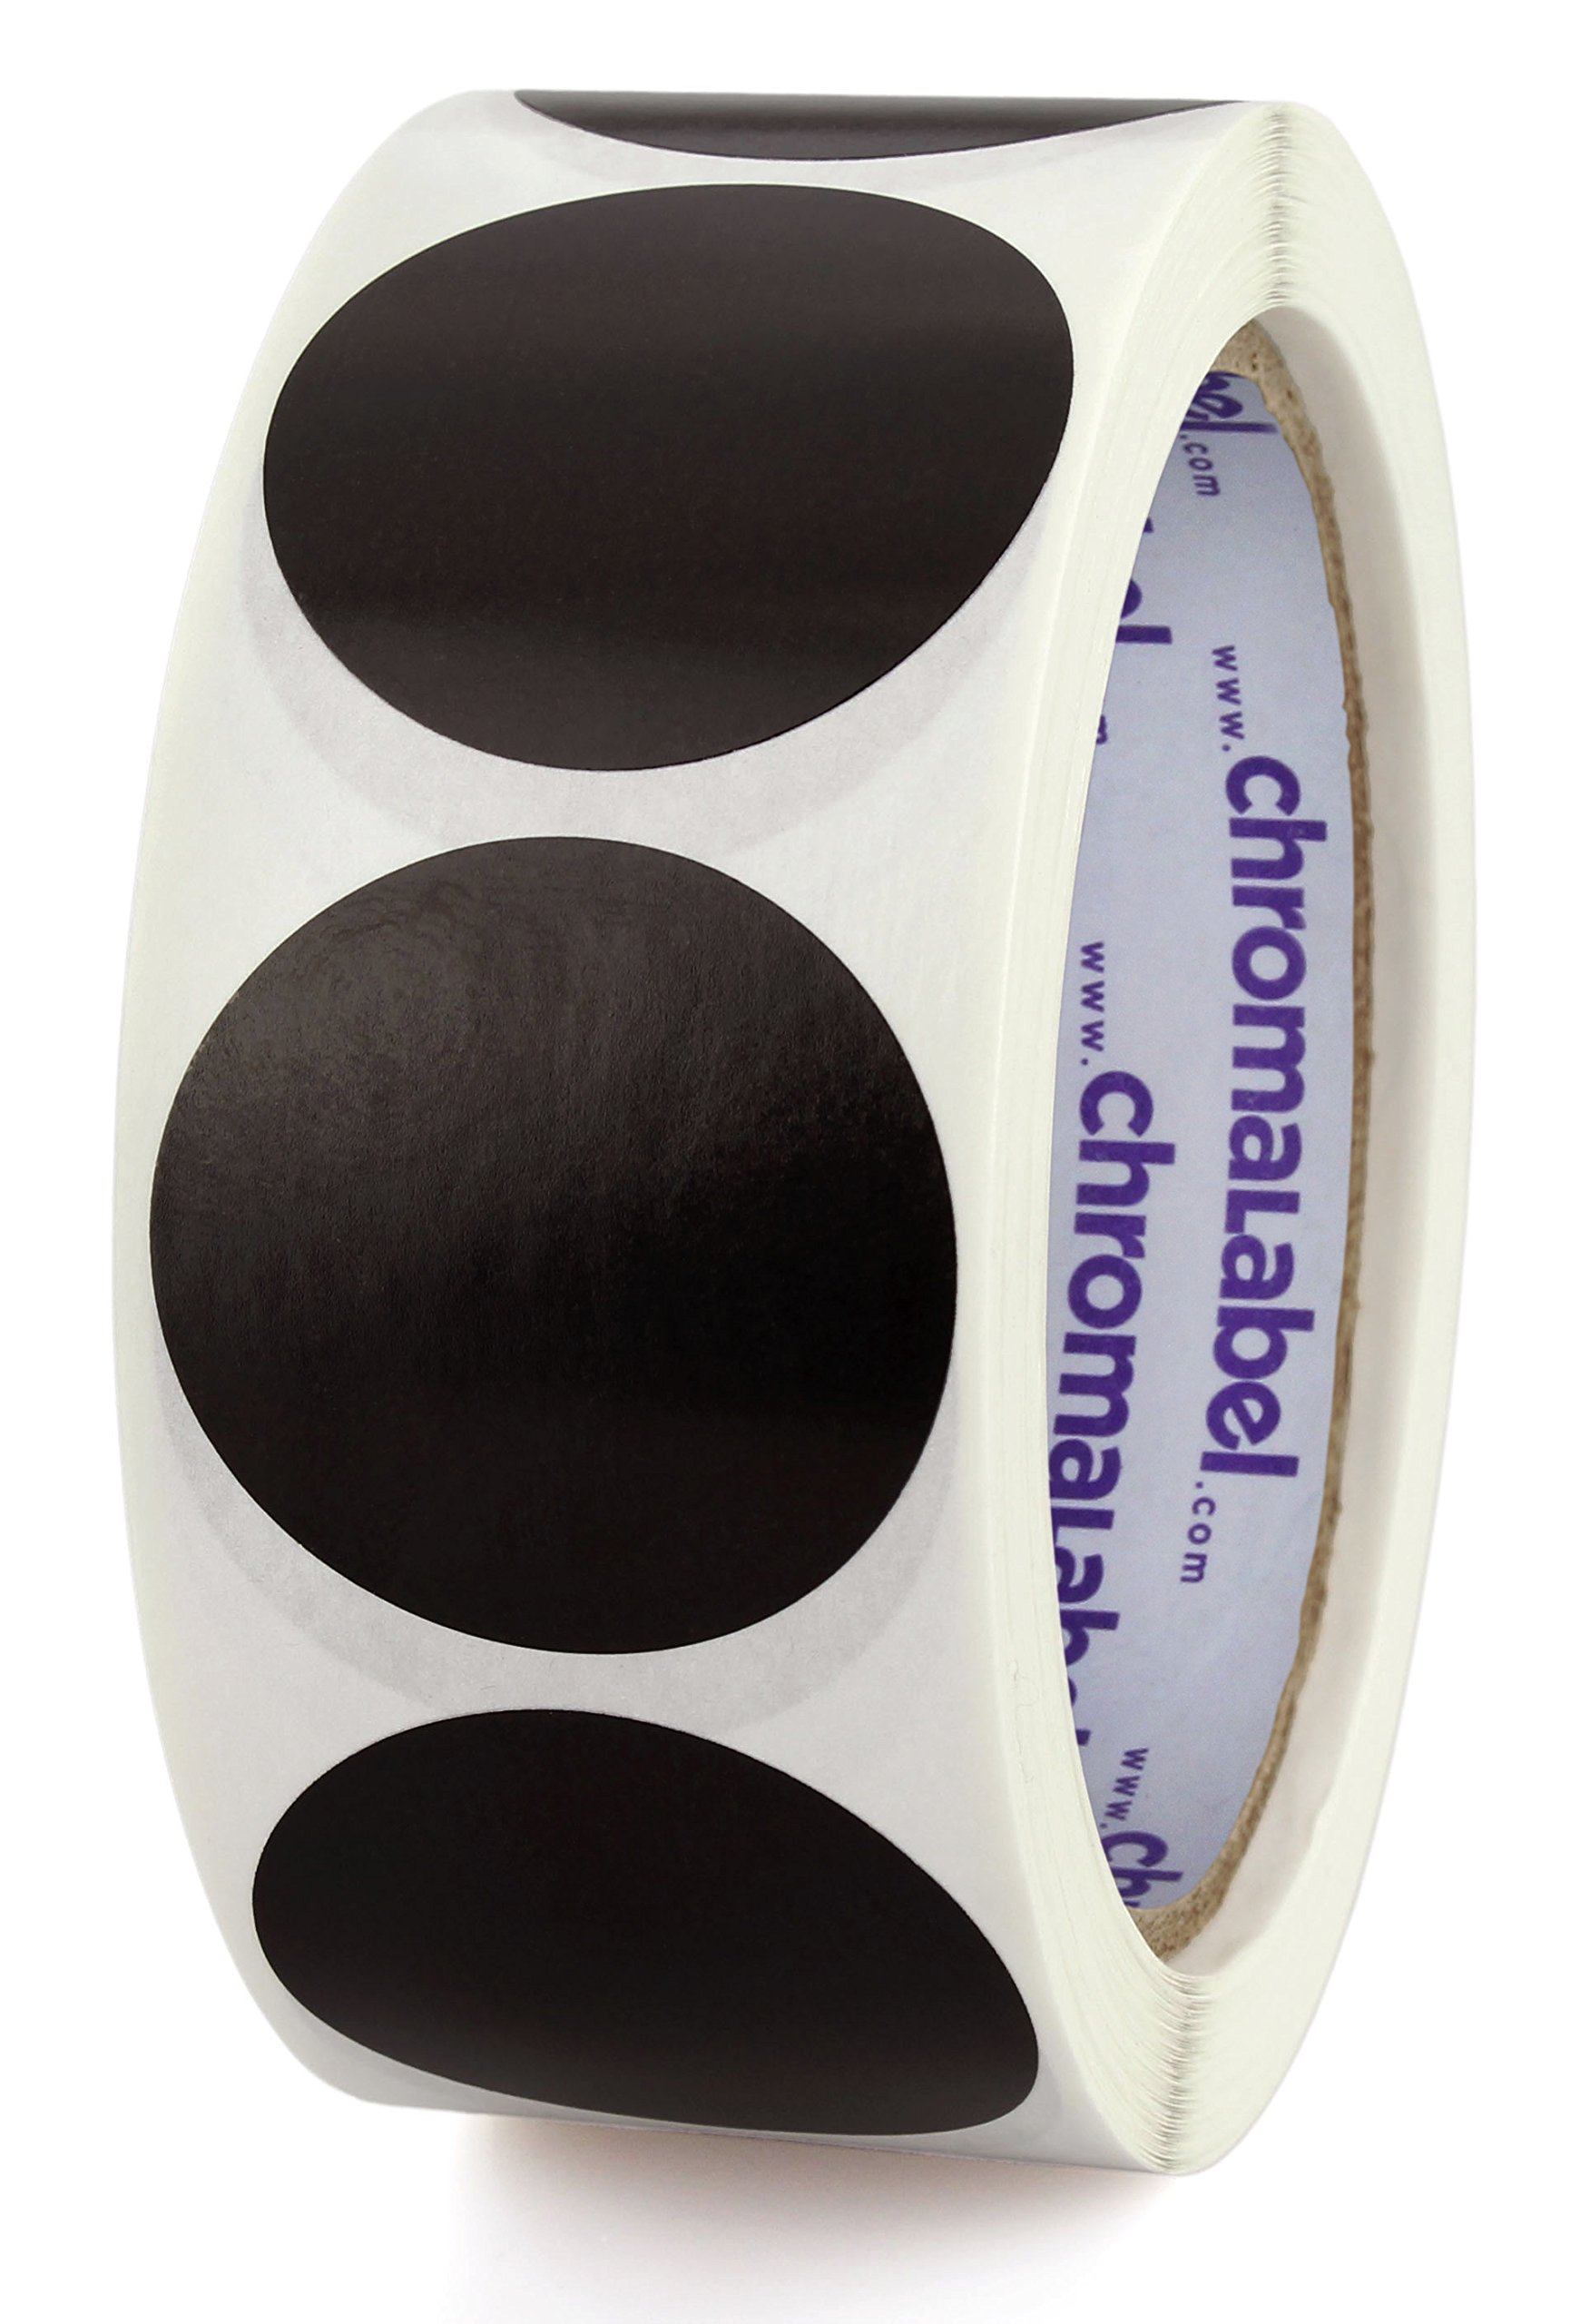 ChromaLabel 1-1/2 inch Color-Code Dot Labels | 500/Roll (Black)